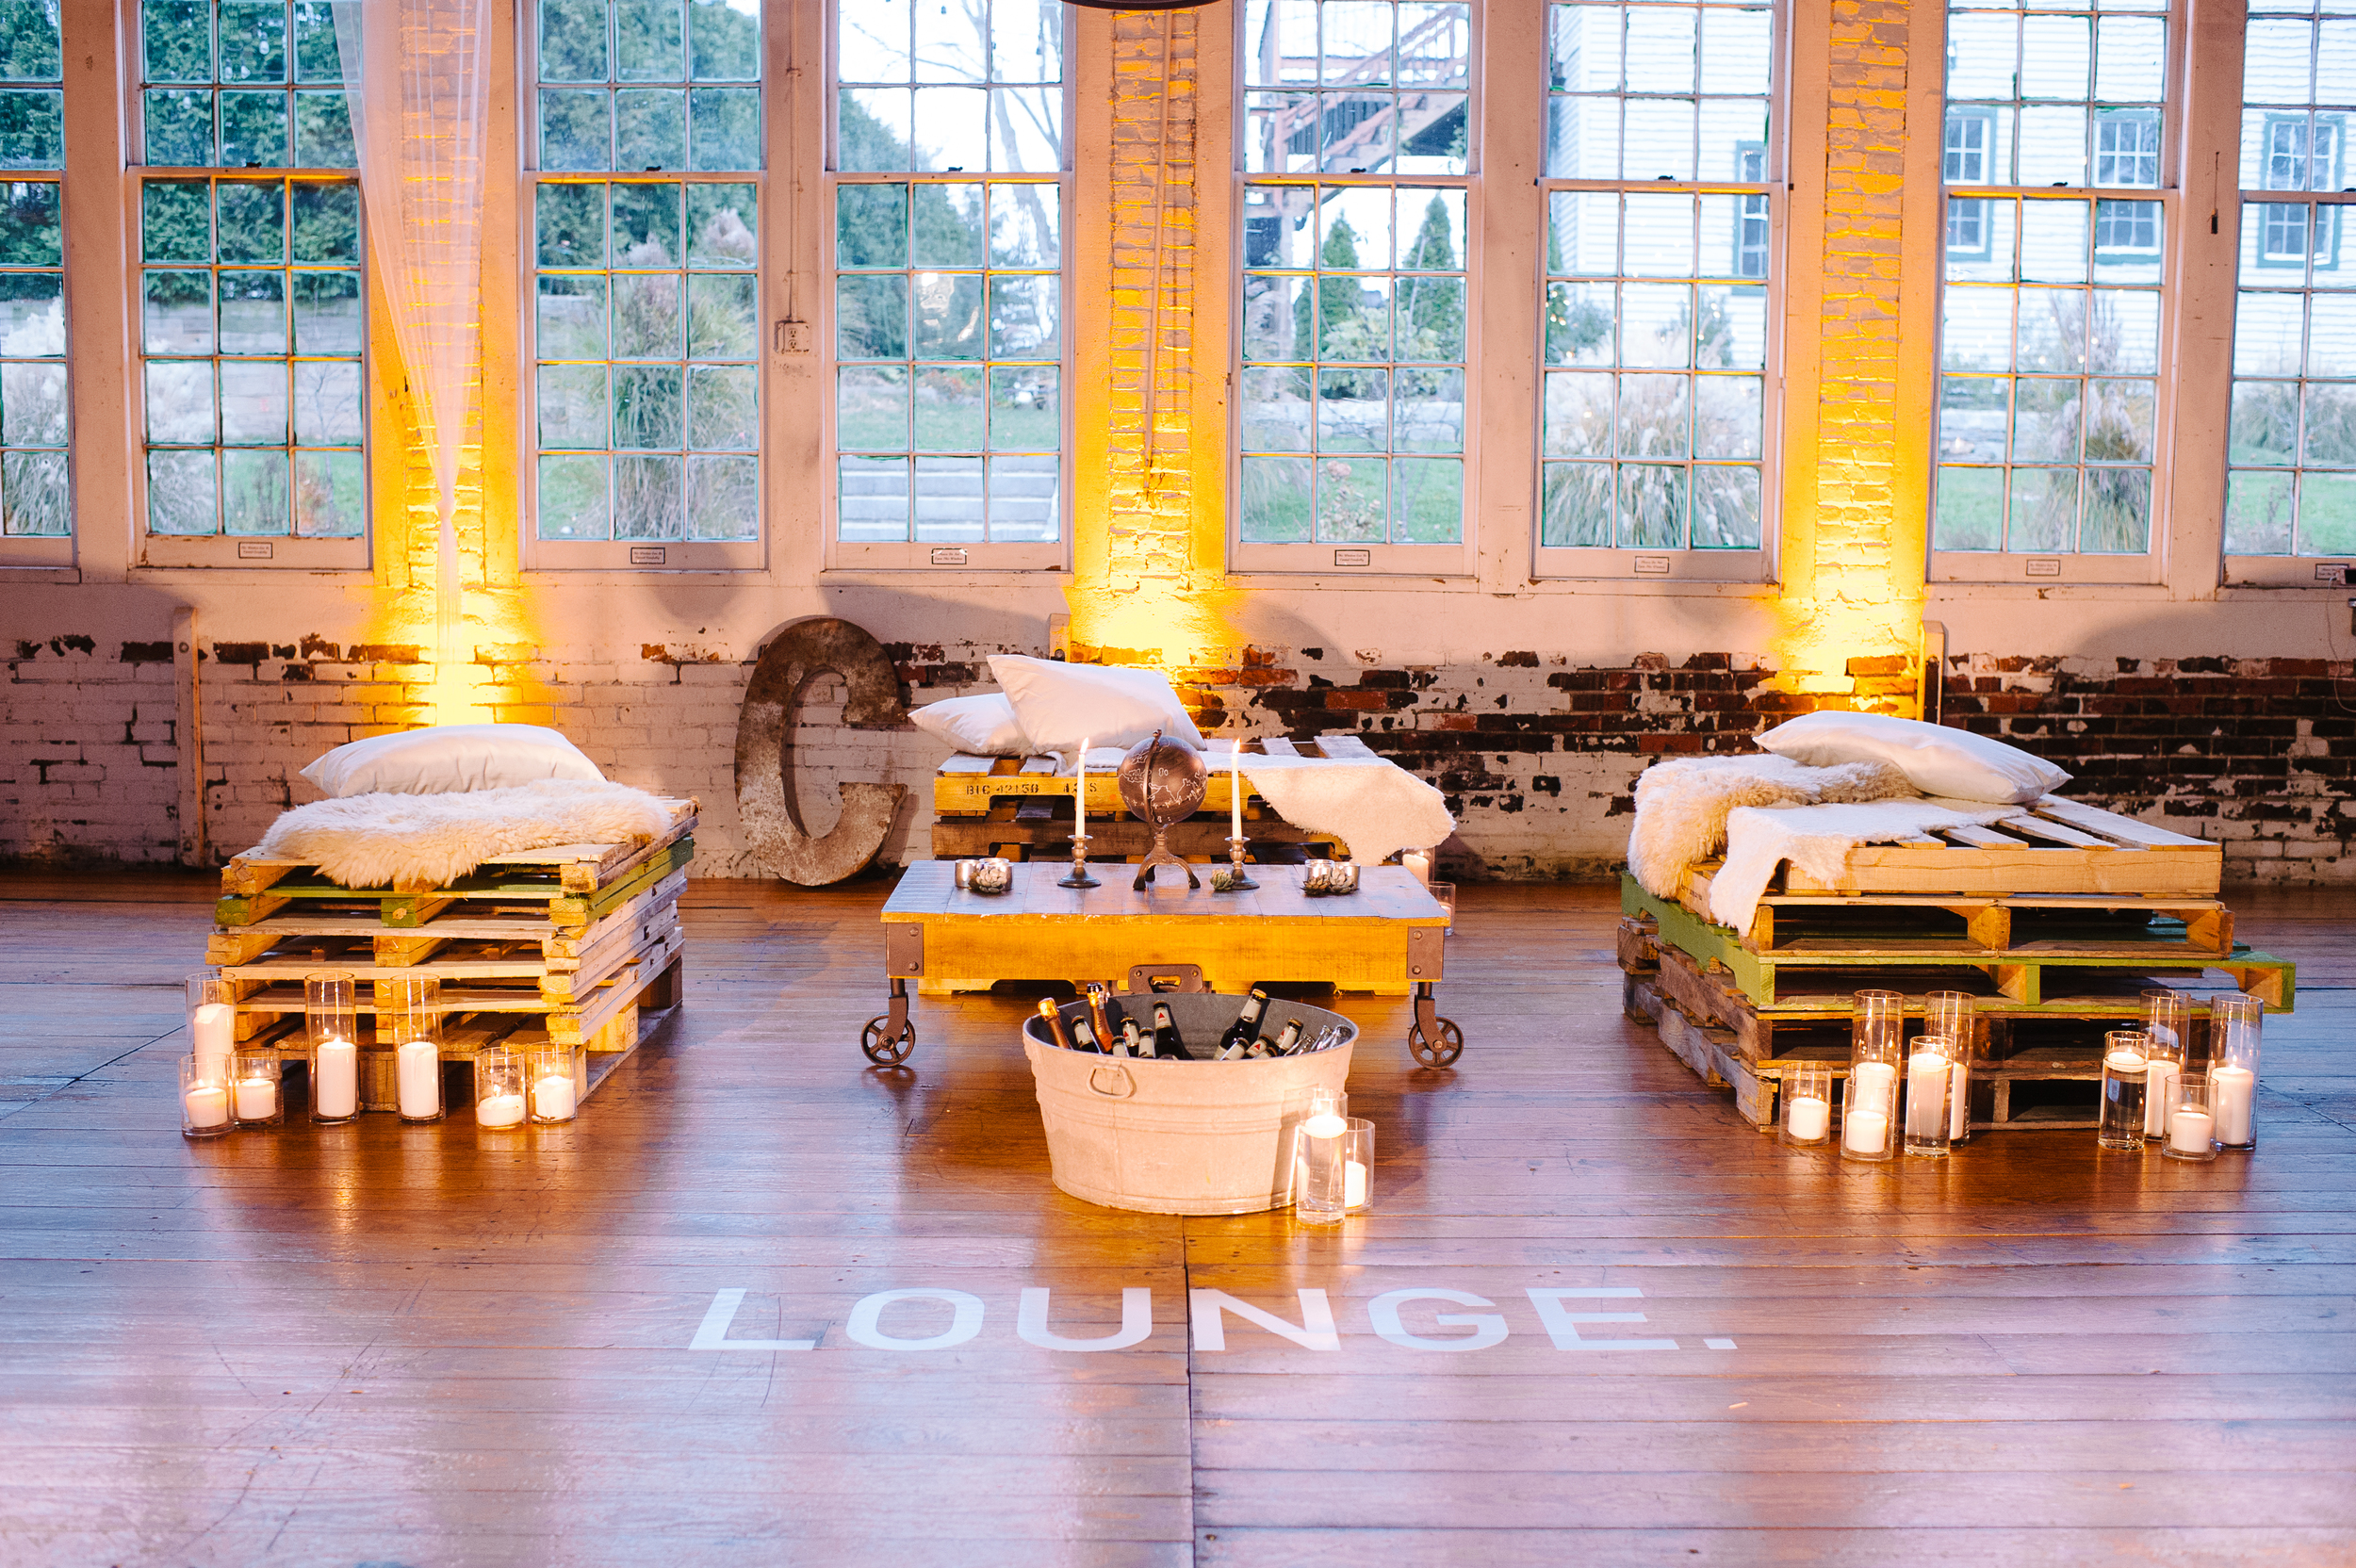 "Shipping pallets are all the rage on Pinterest. I loved the idea of having pallets as ceremony seating and converted into a lounge. Each stack got ""zhoozh-ed"" up with painting one pallet per pile. Soften with real lamb fur & pillows this was actually pretty comfortable."